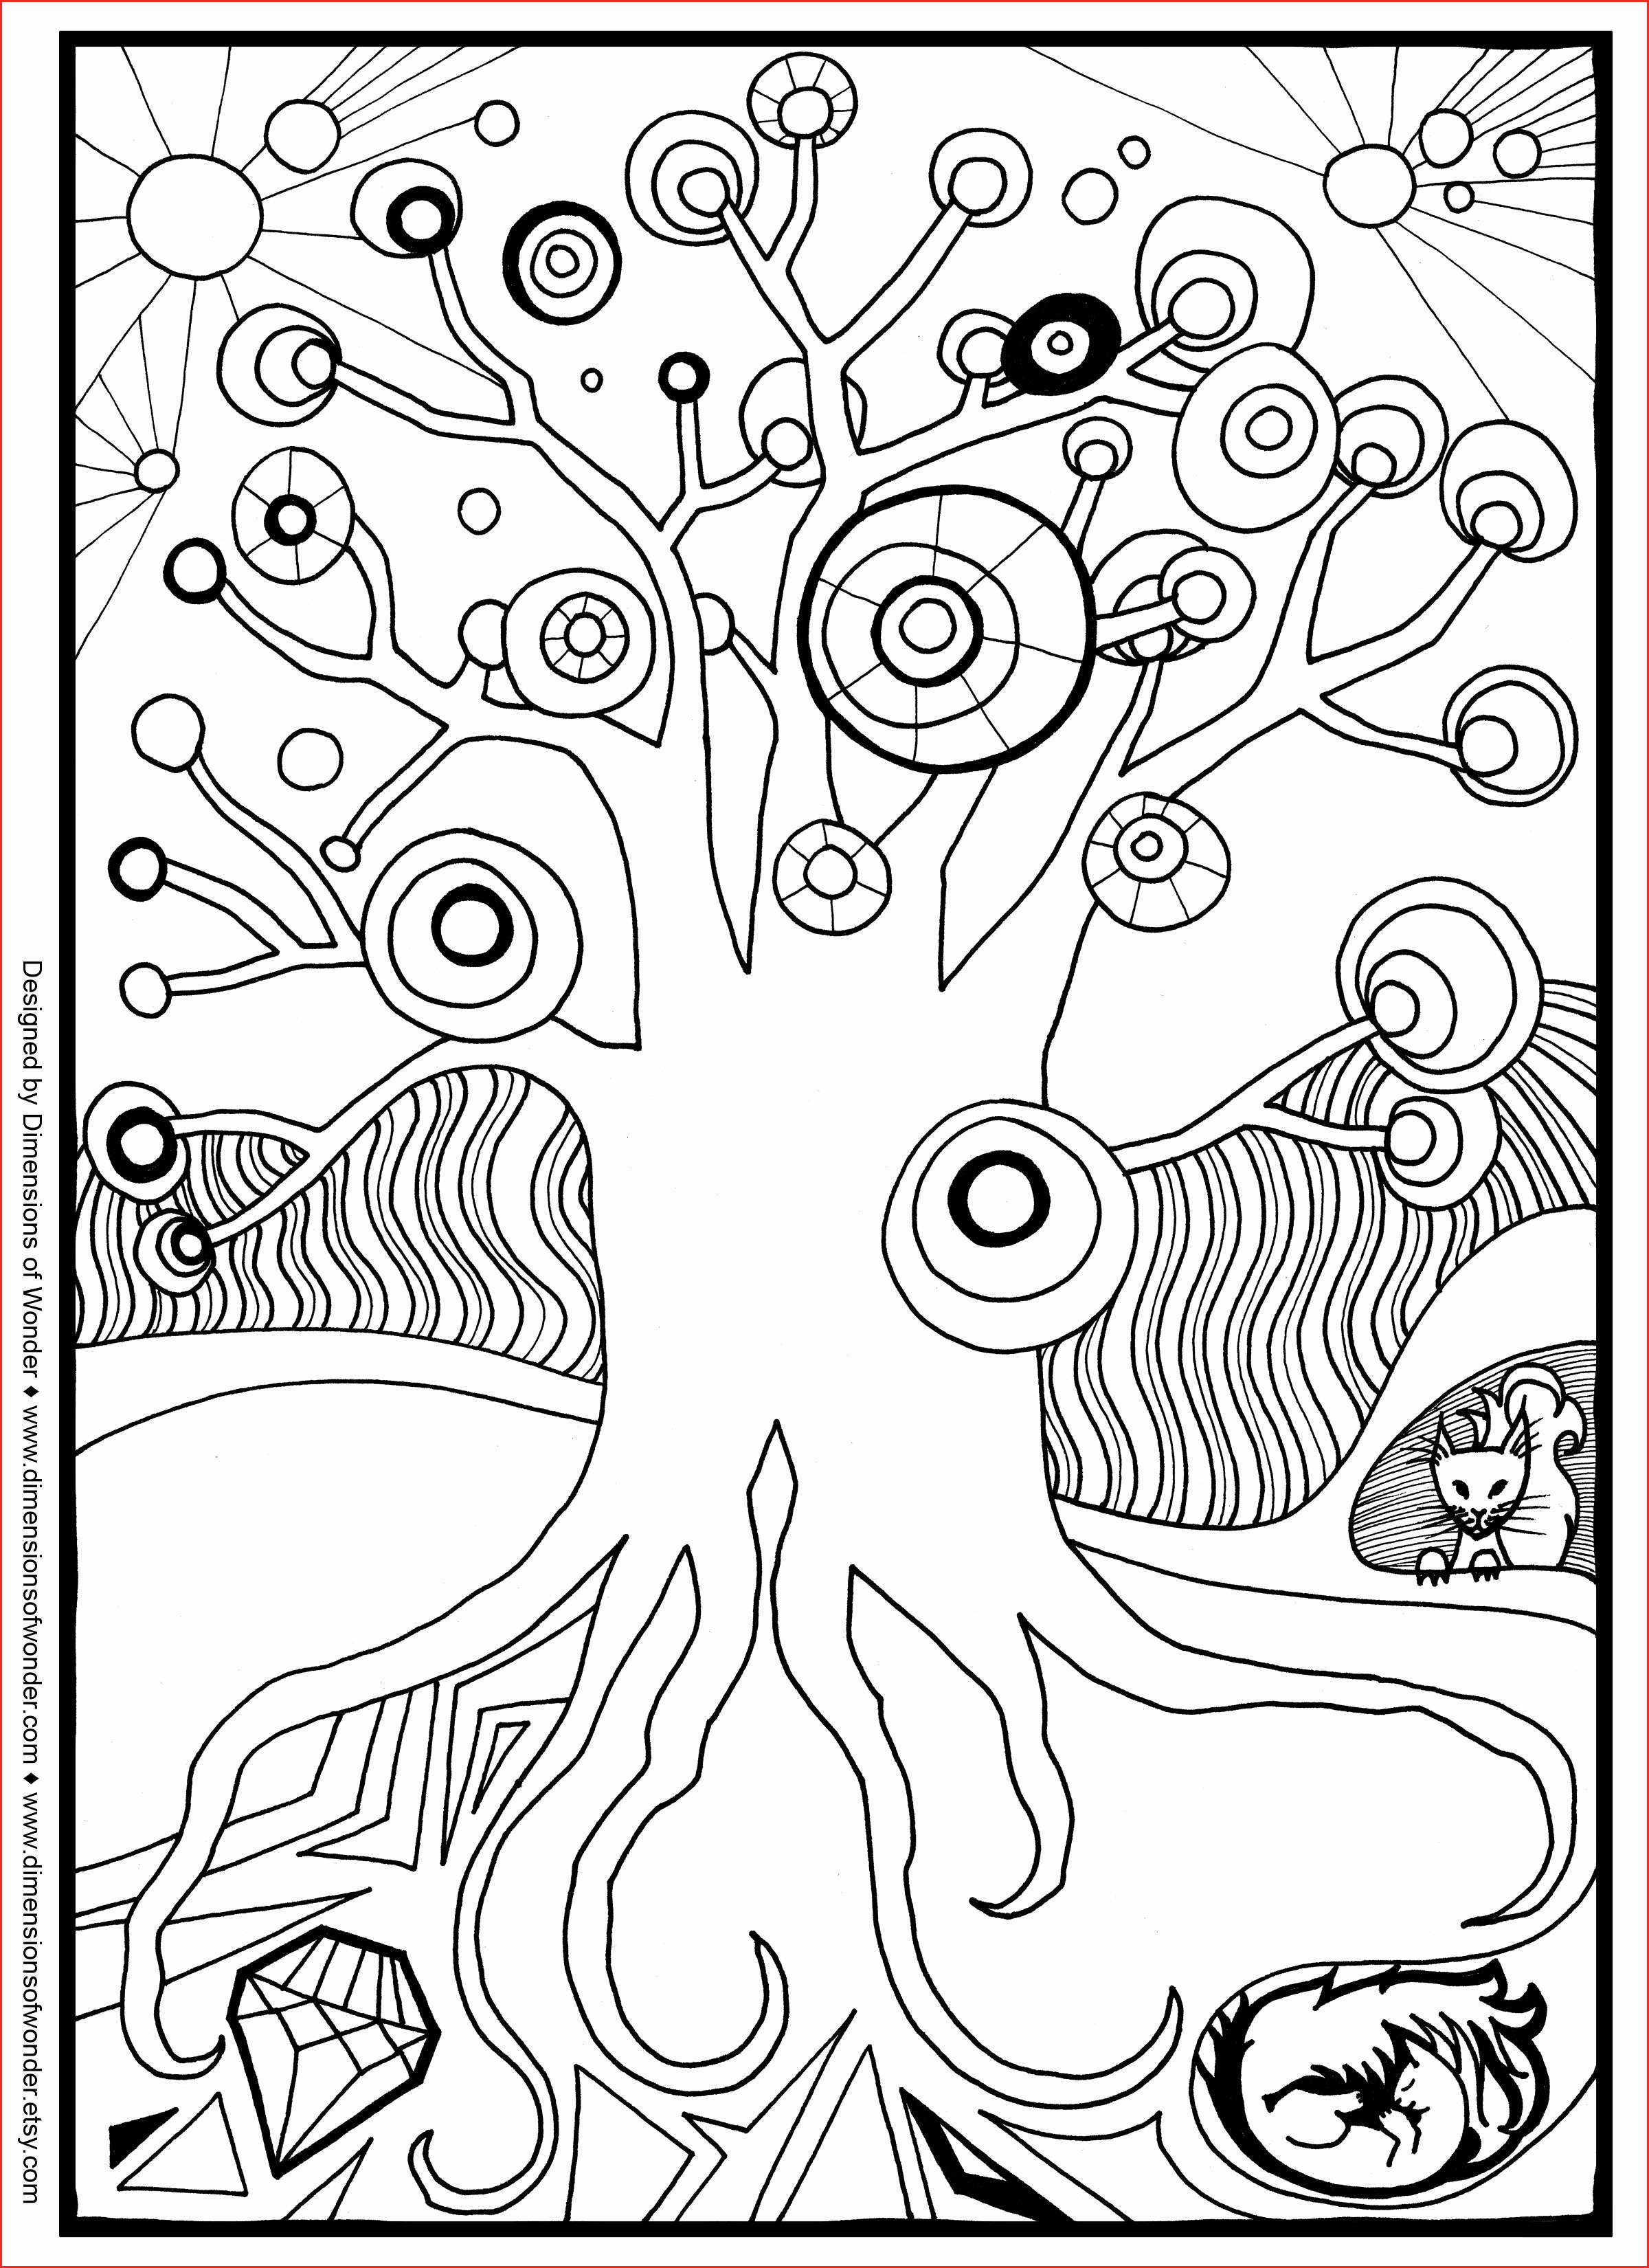 Christmas Coloring Pages For Adults Pdf With 27019 34 Free